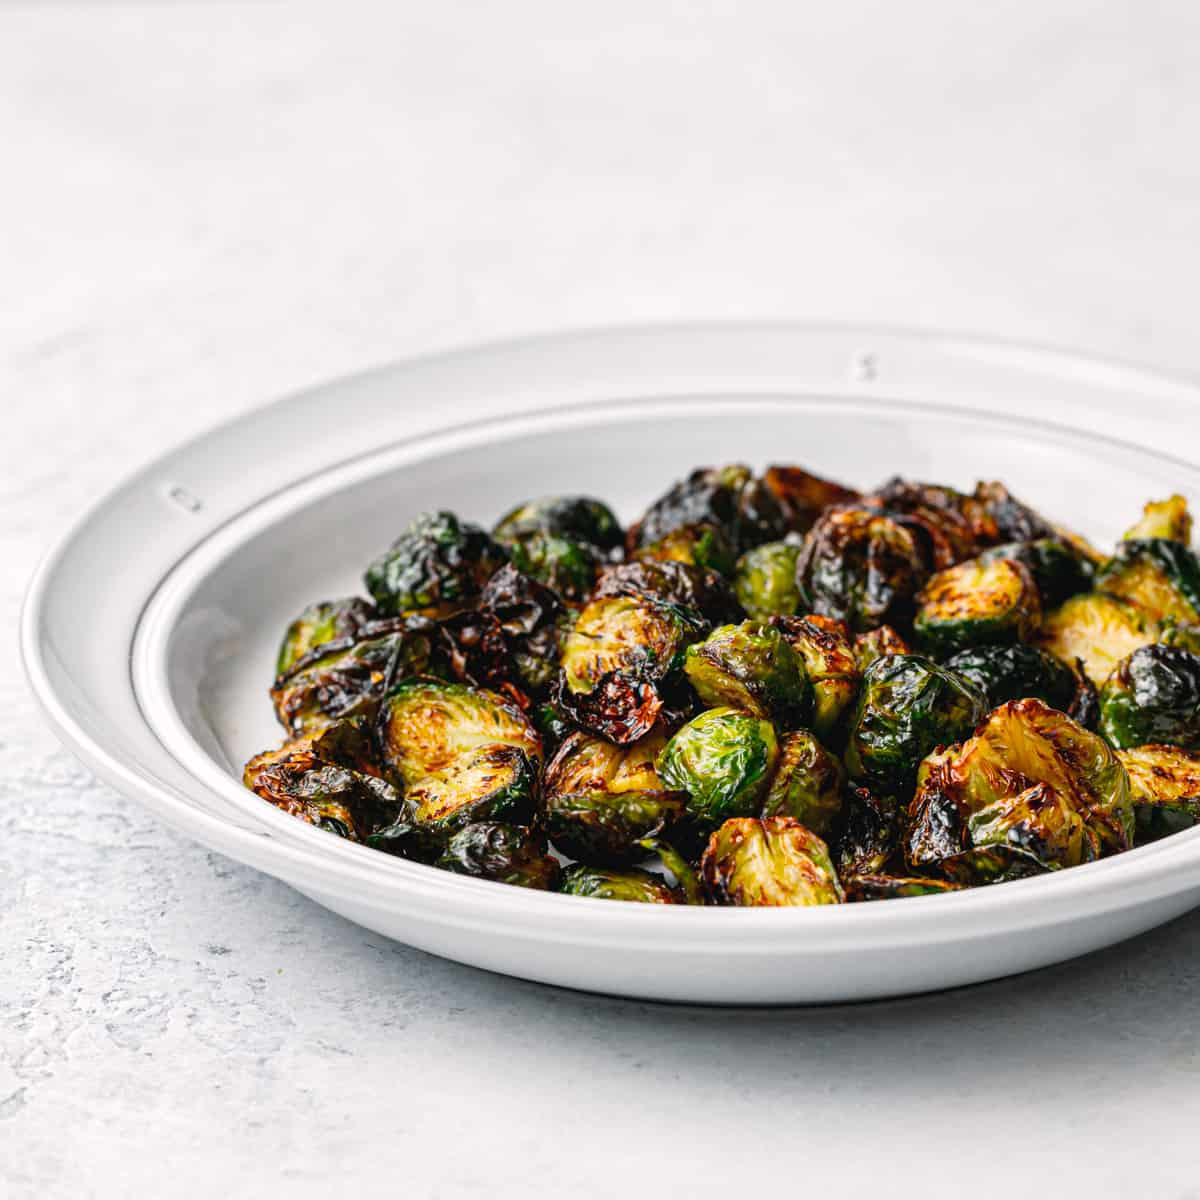 Brussels Sprouts with Balsamic Glaze